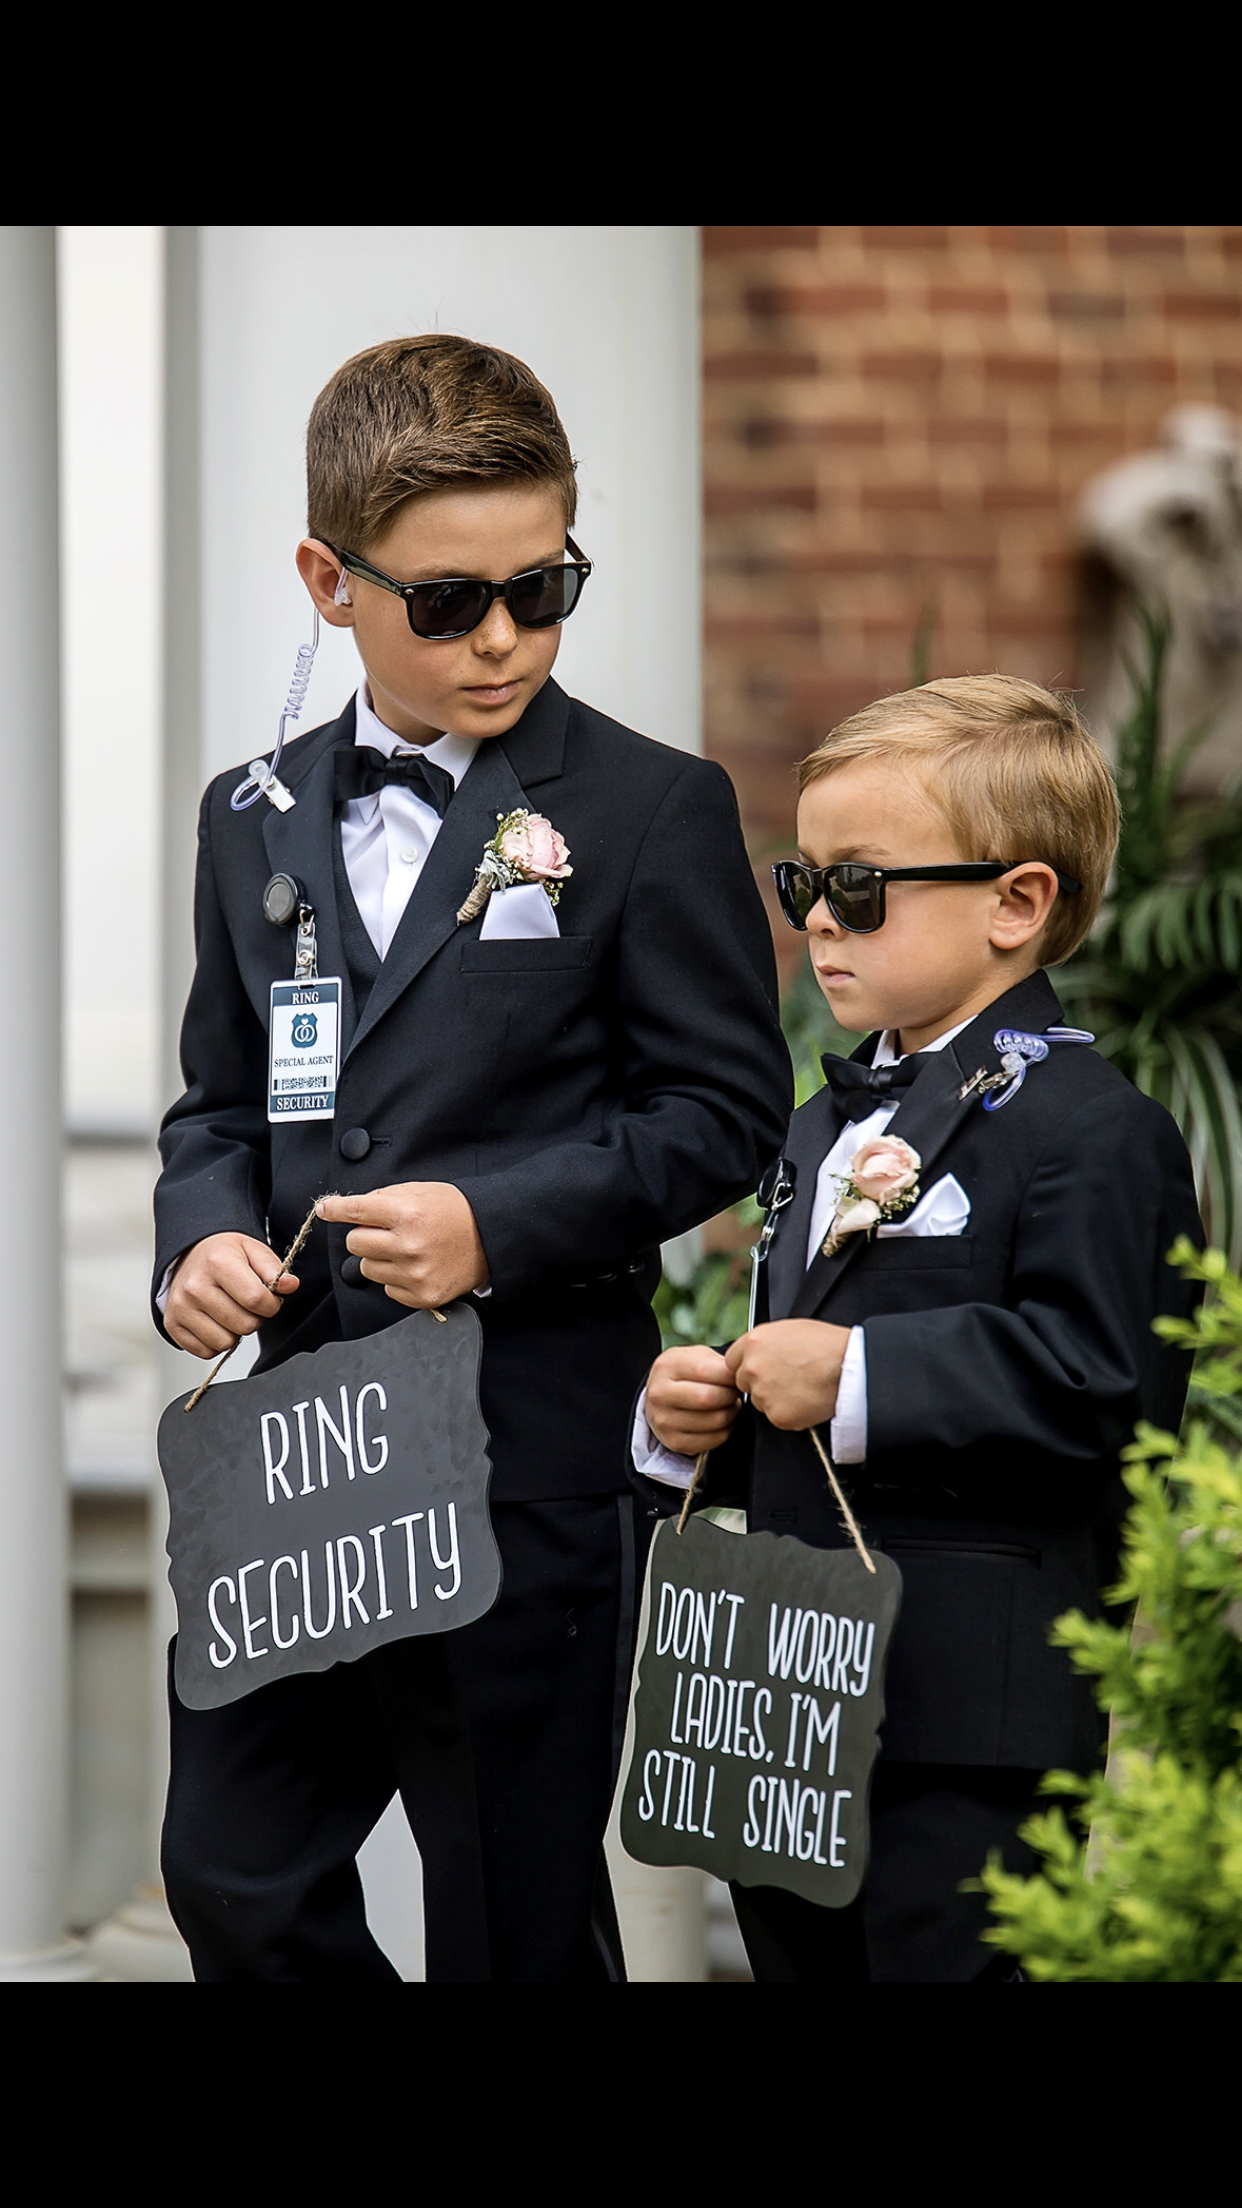 Ring Bearers Security Guards Ring Bearer Security Ring Security Wedding Bridesmaid Groomsmen Gifts